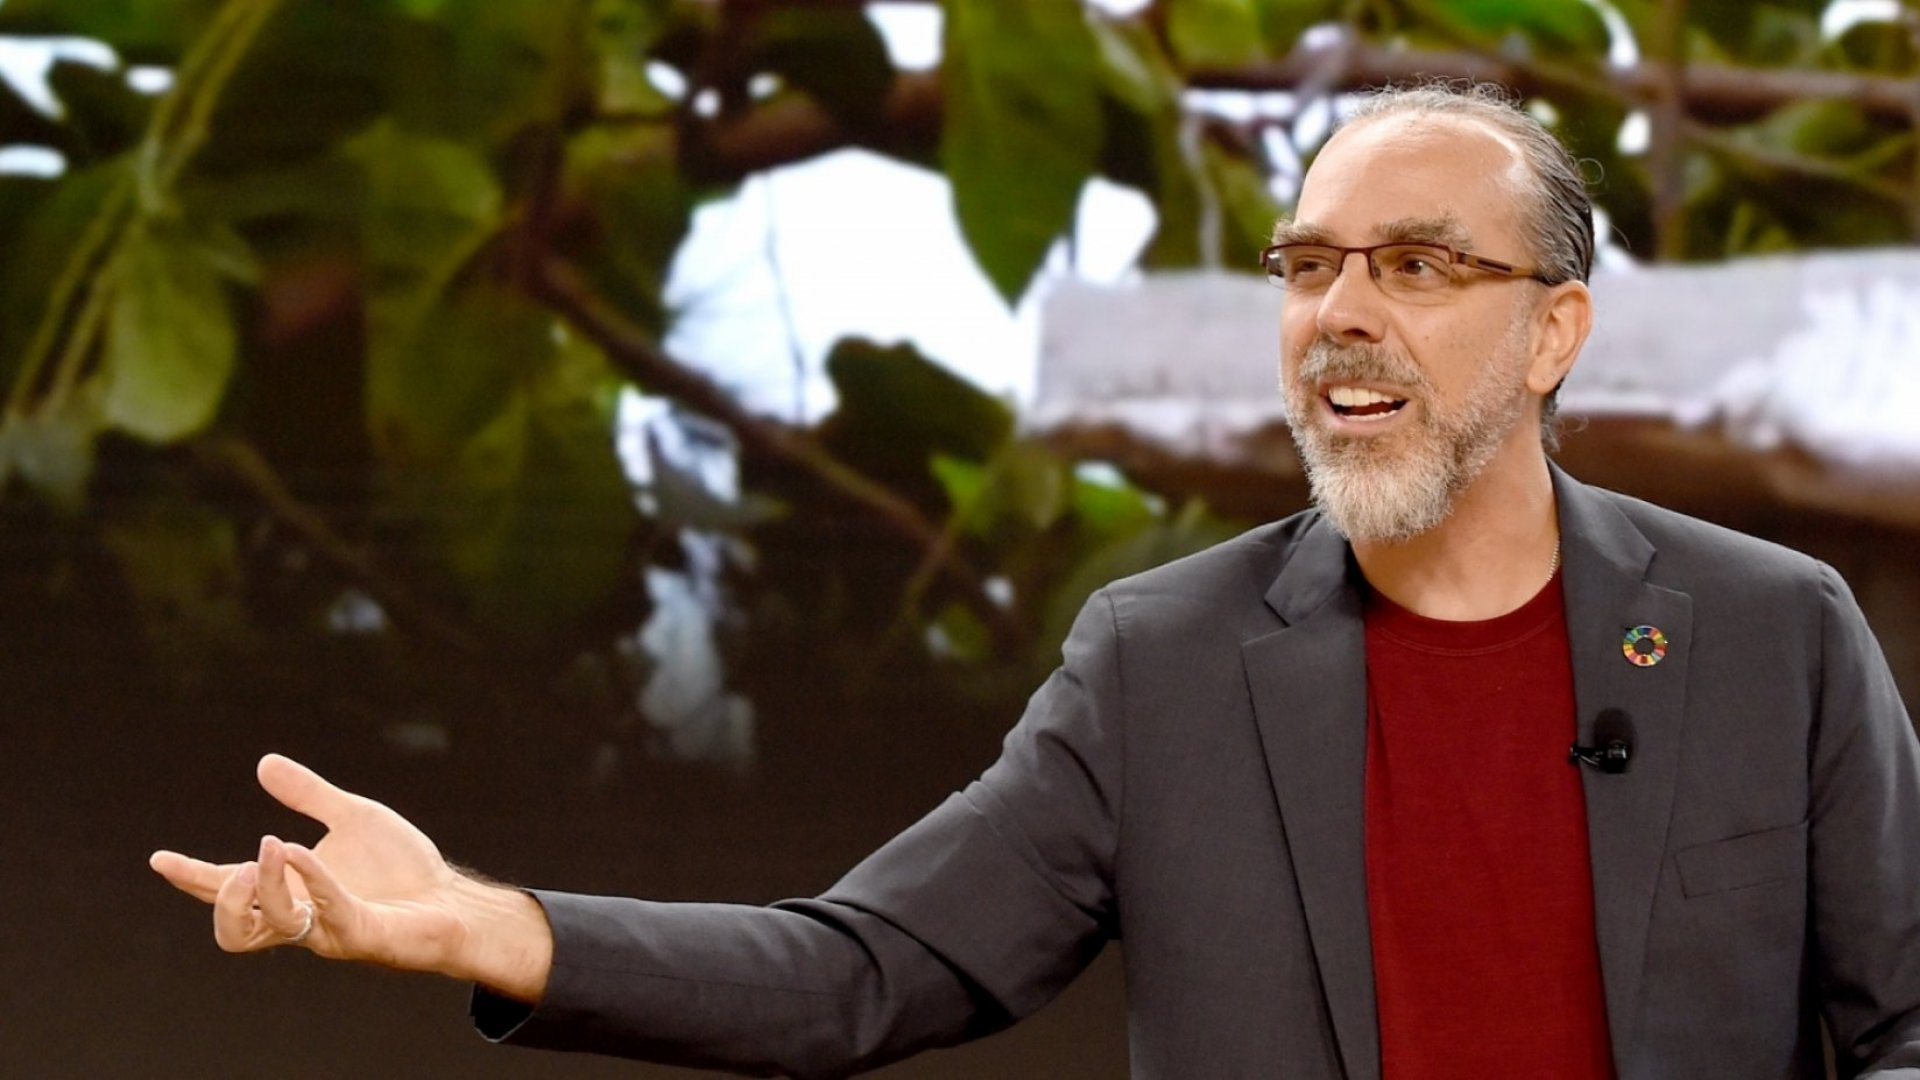 Google X co-founder and scientist Dr. Astro Teller.